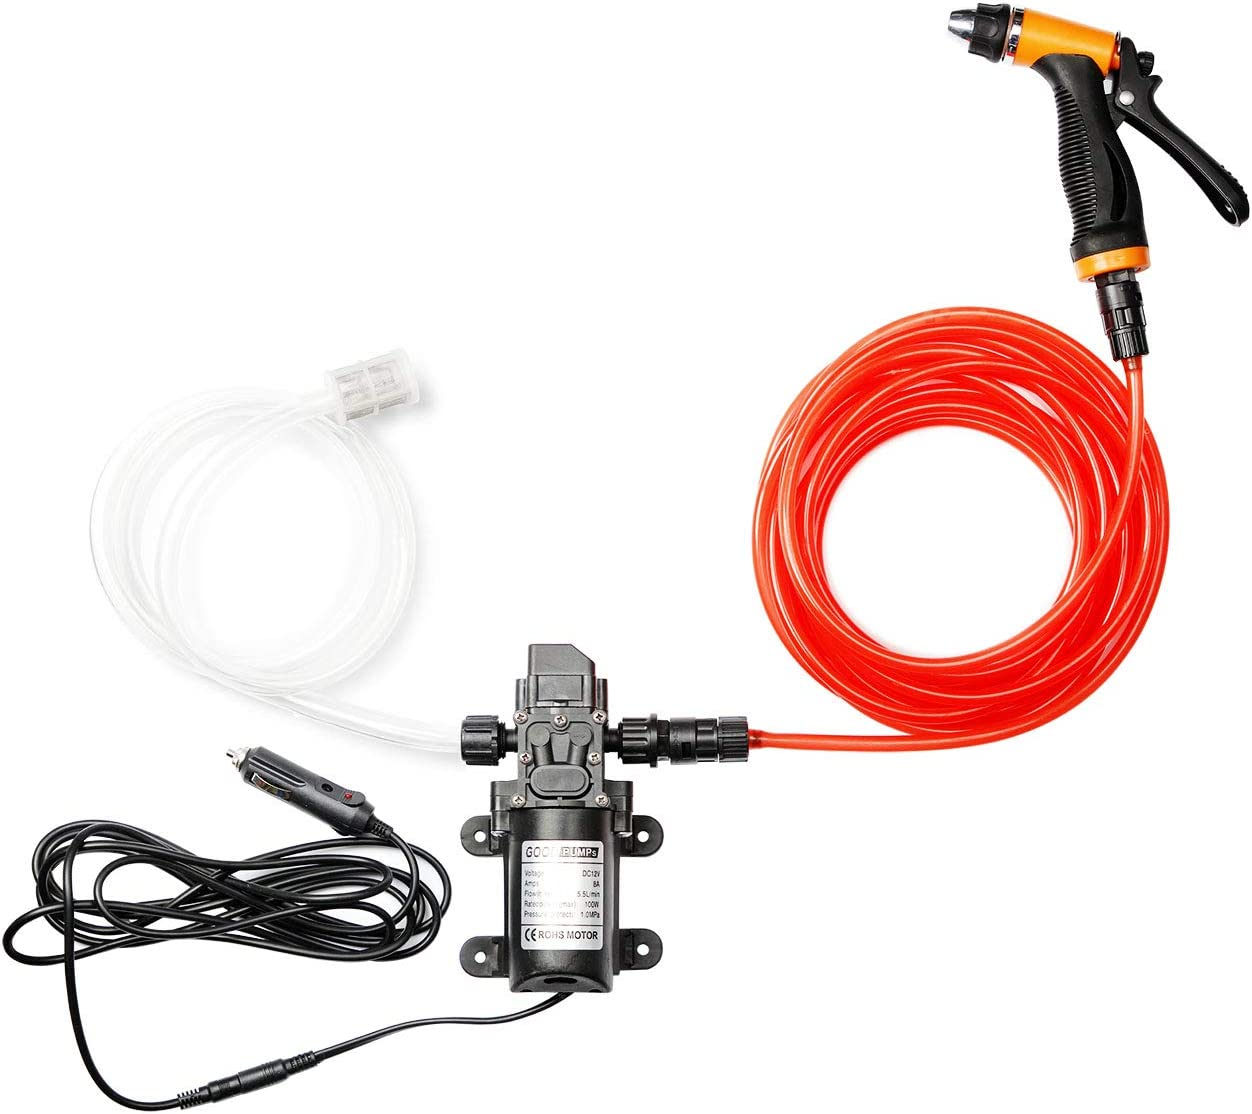 Portable 12v Car Pressure Washer 100W 120PSI Electric Washer Pump fits for Car Home Garden Cleaning Pet Cleaning by Big Autoparts